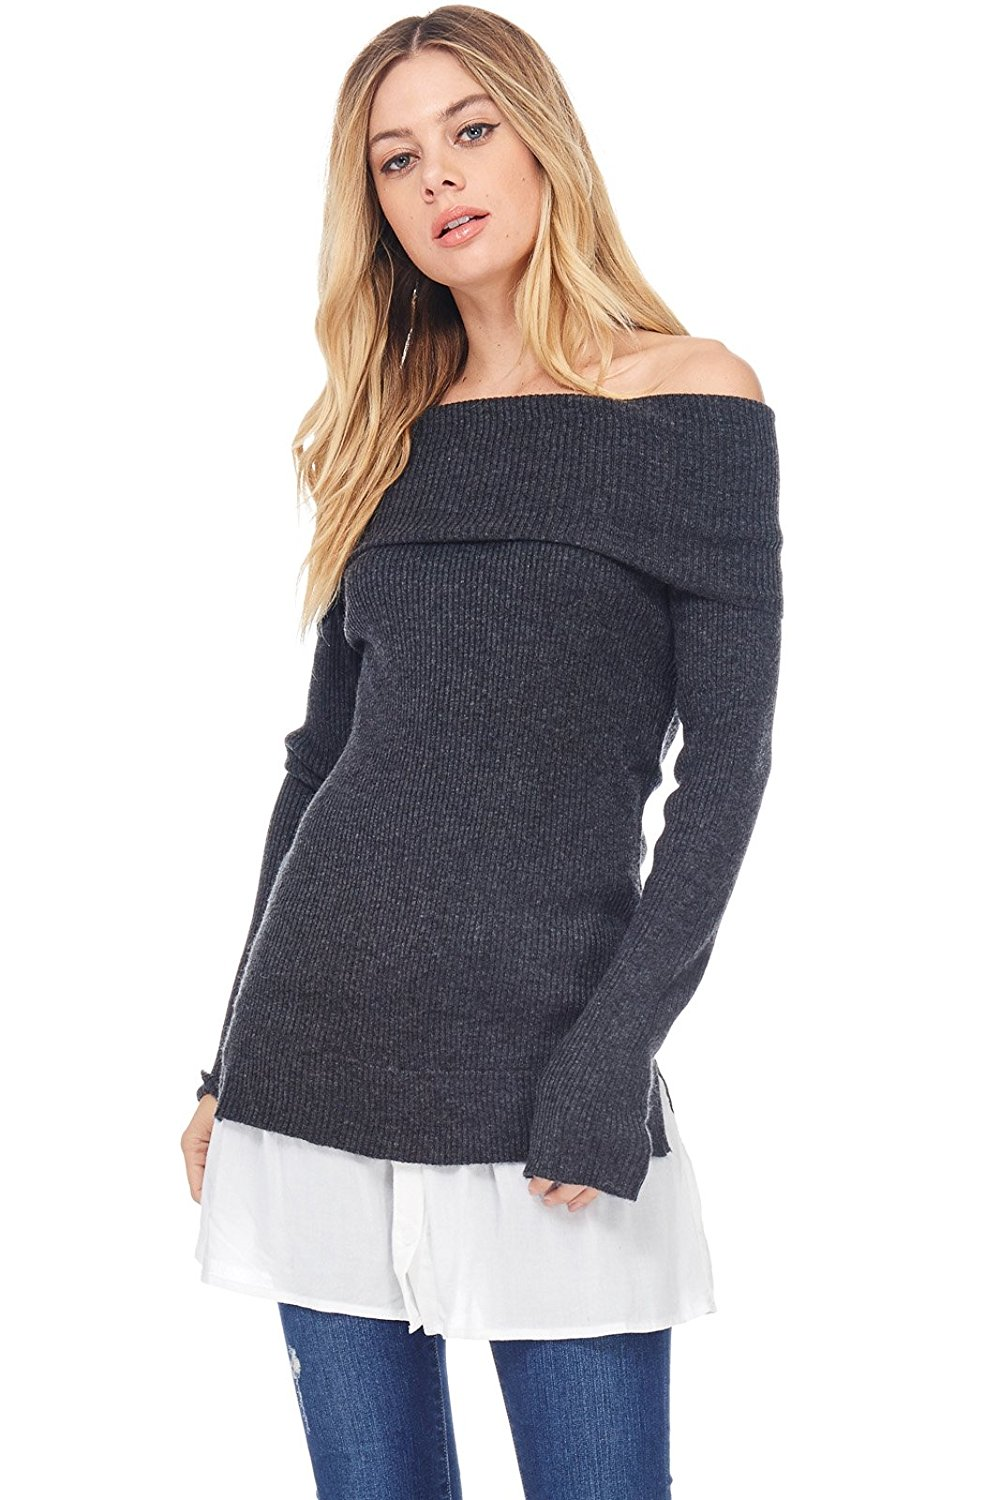 abd1ac998070 Get Quotations · Alexander + David Womens Casual Off The Shoulder Knit  Sweater Tunic Top